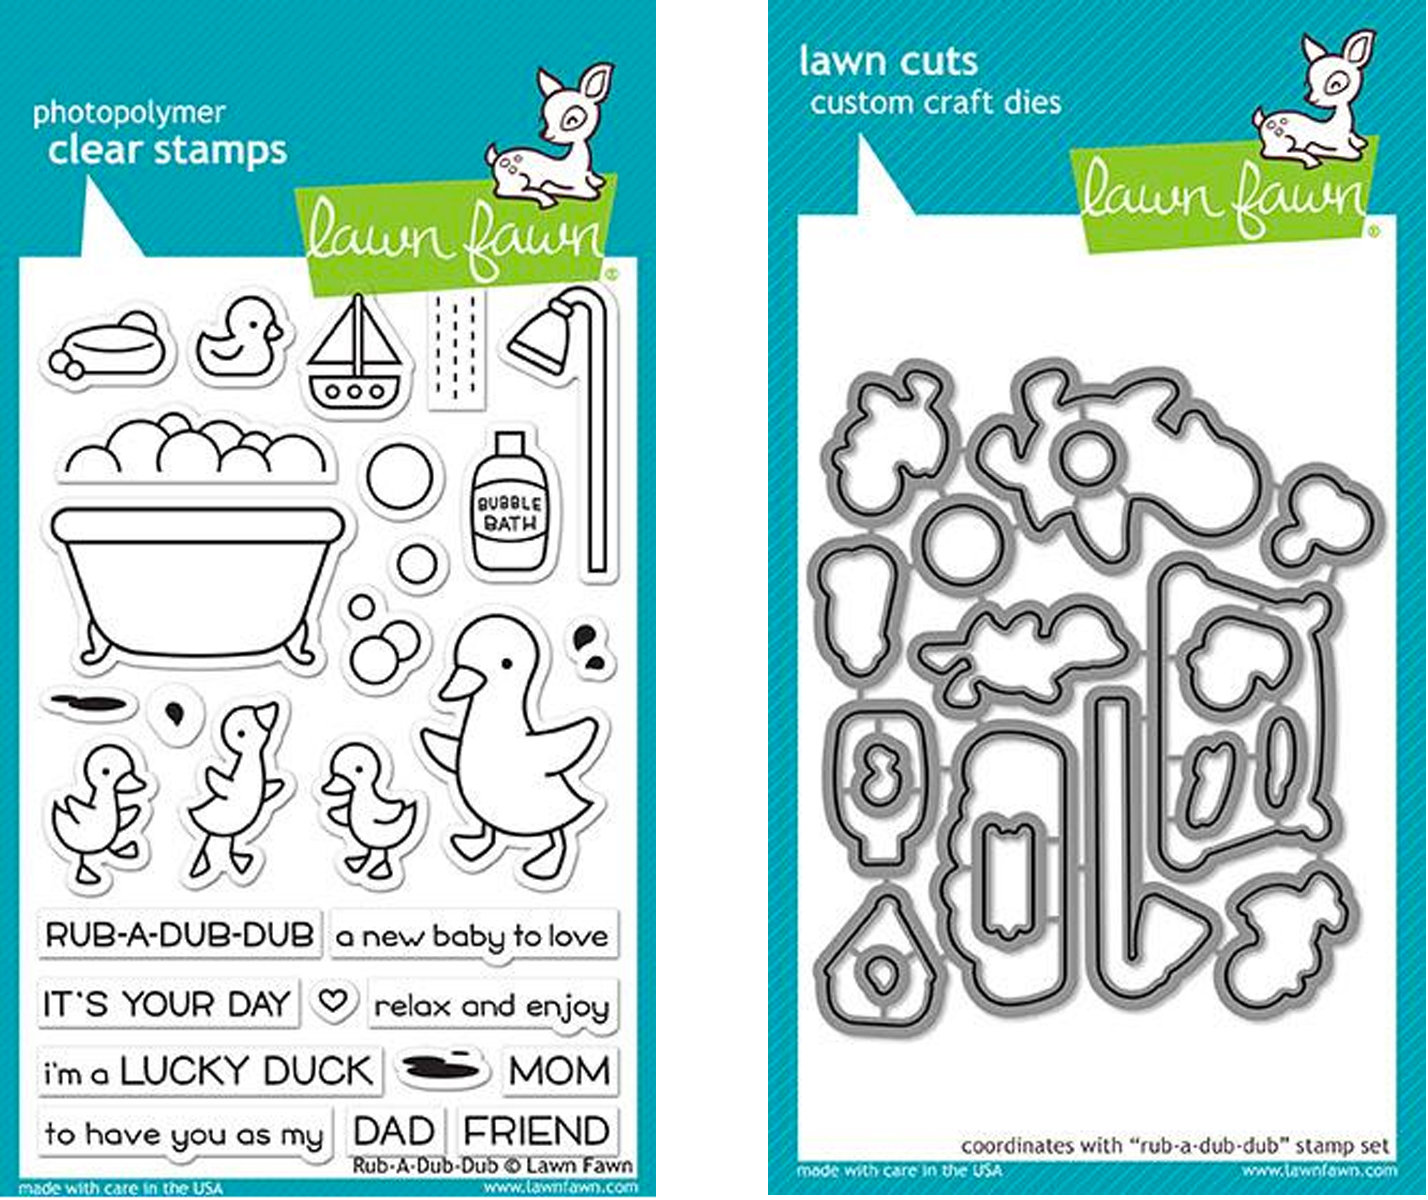 LAWN FAWN RUB-A-DUB STAMP AND DIE SET